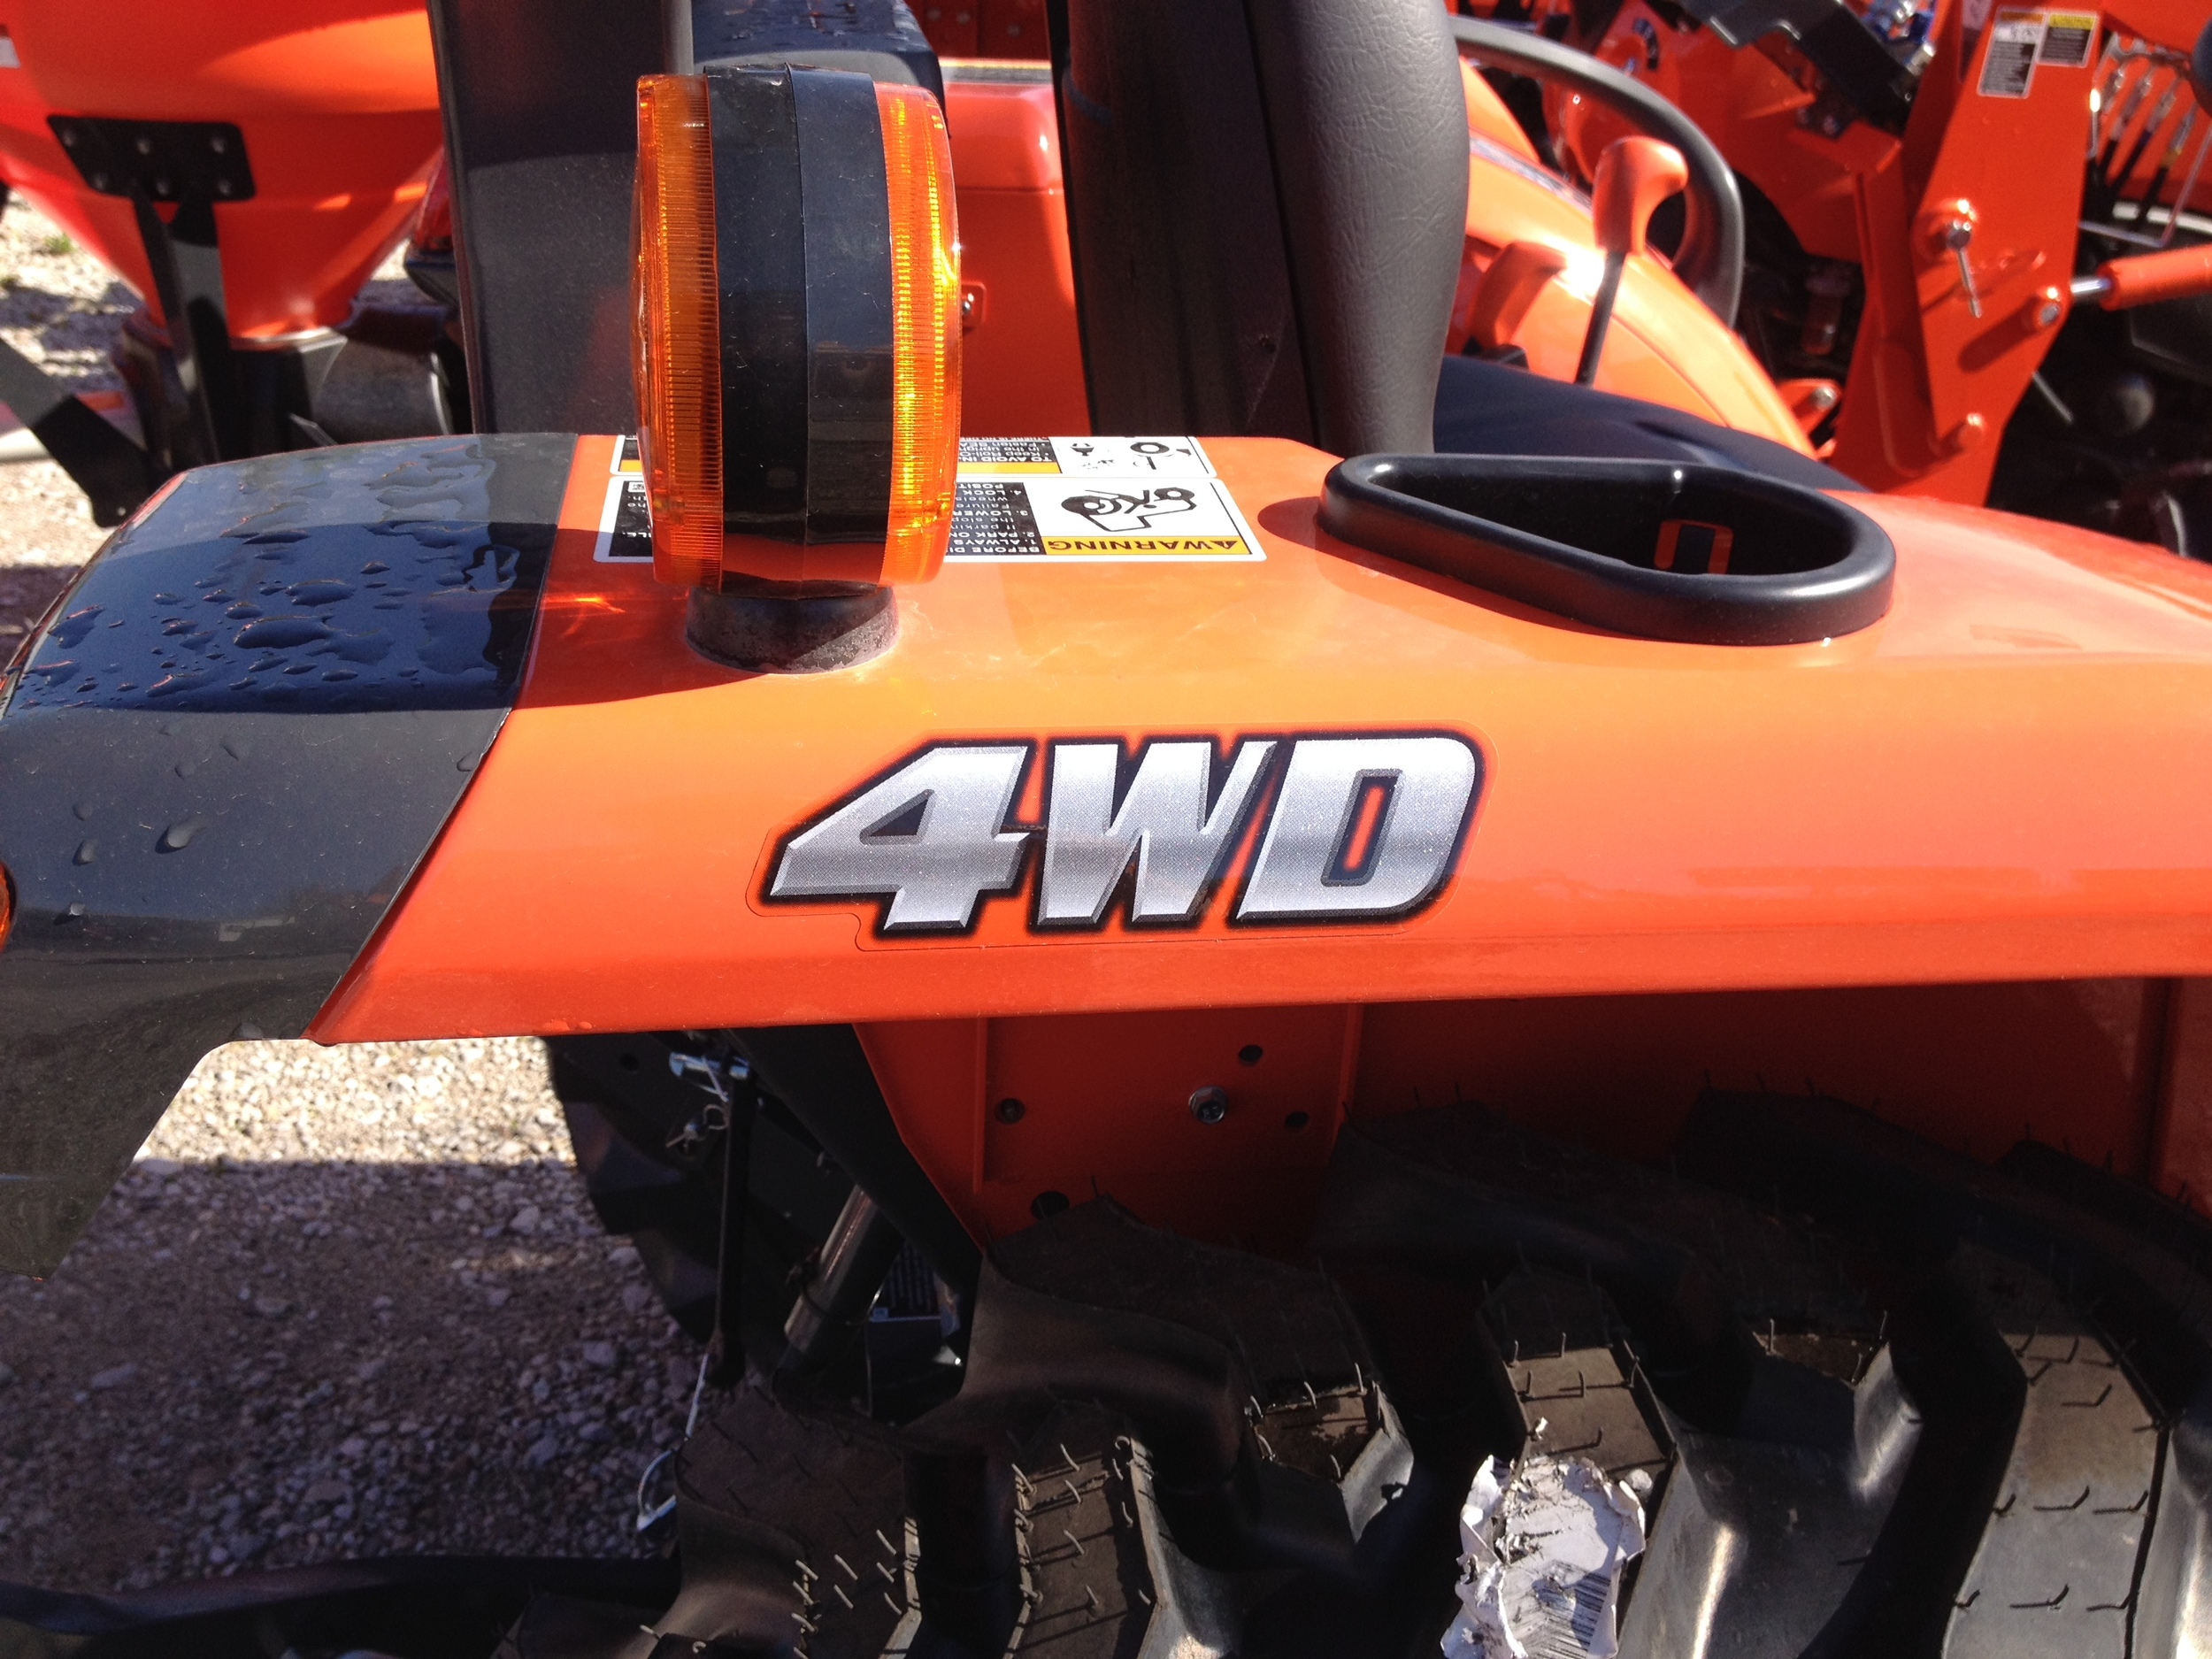 4WD means four wheel drive, but also signifies its a standard gear drive tractor